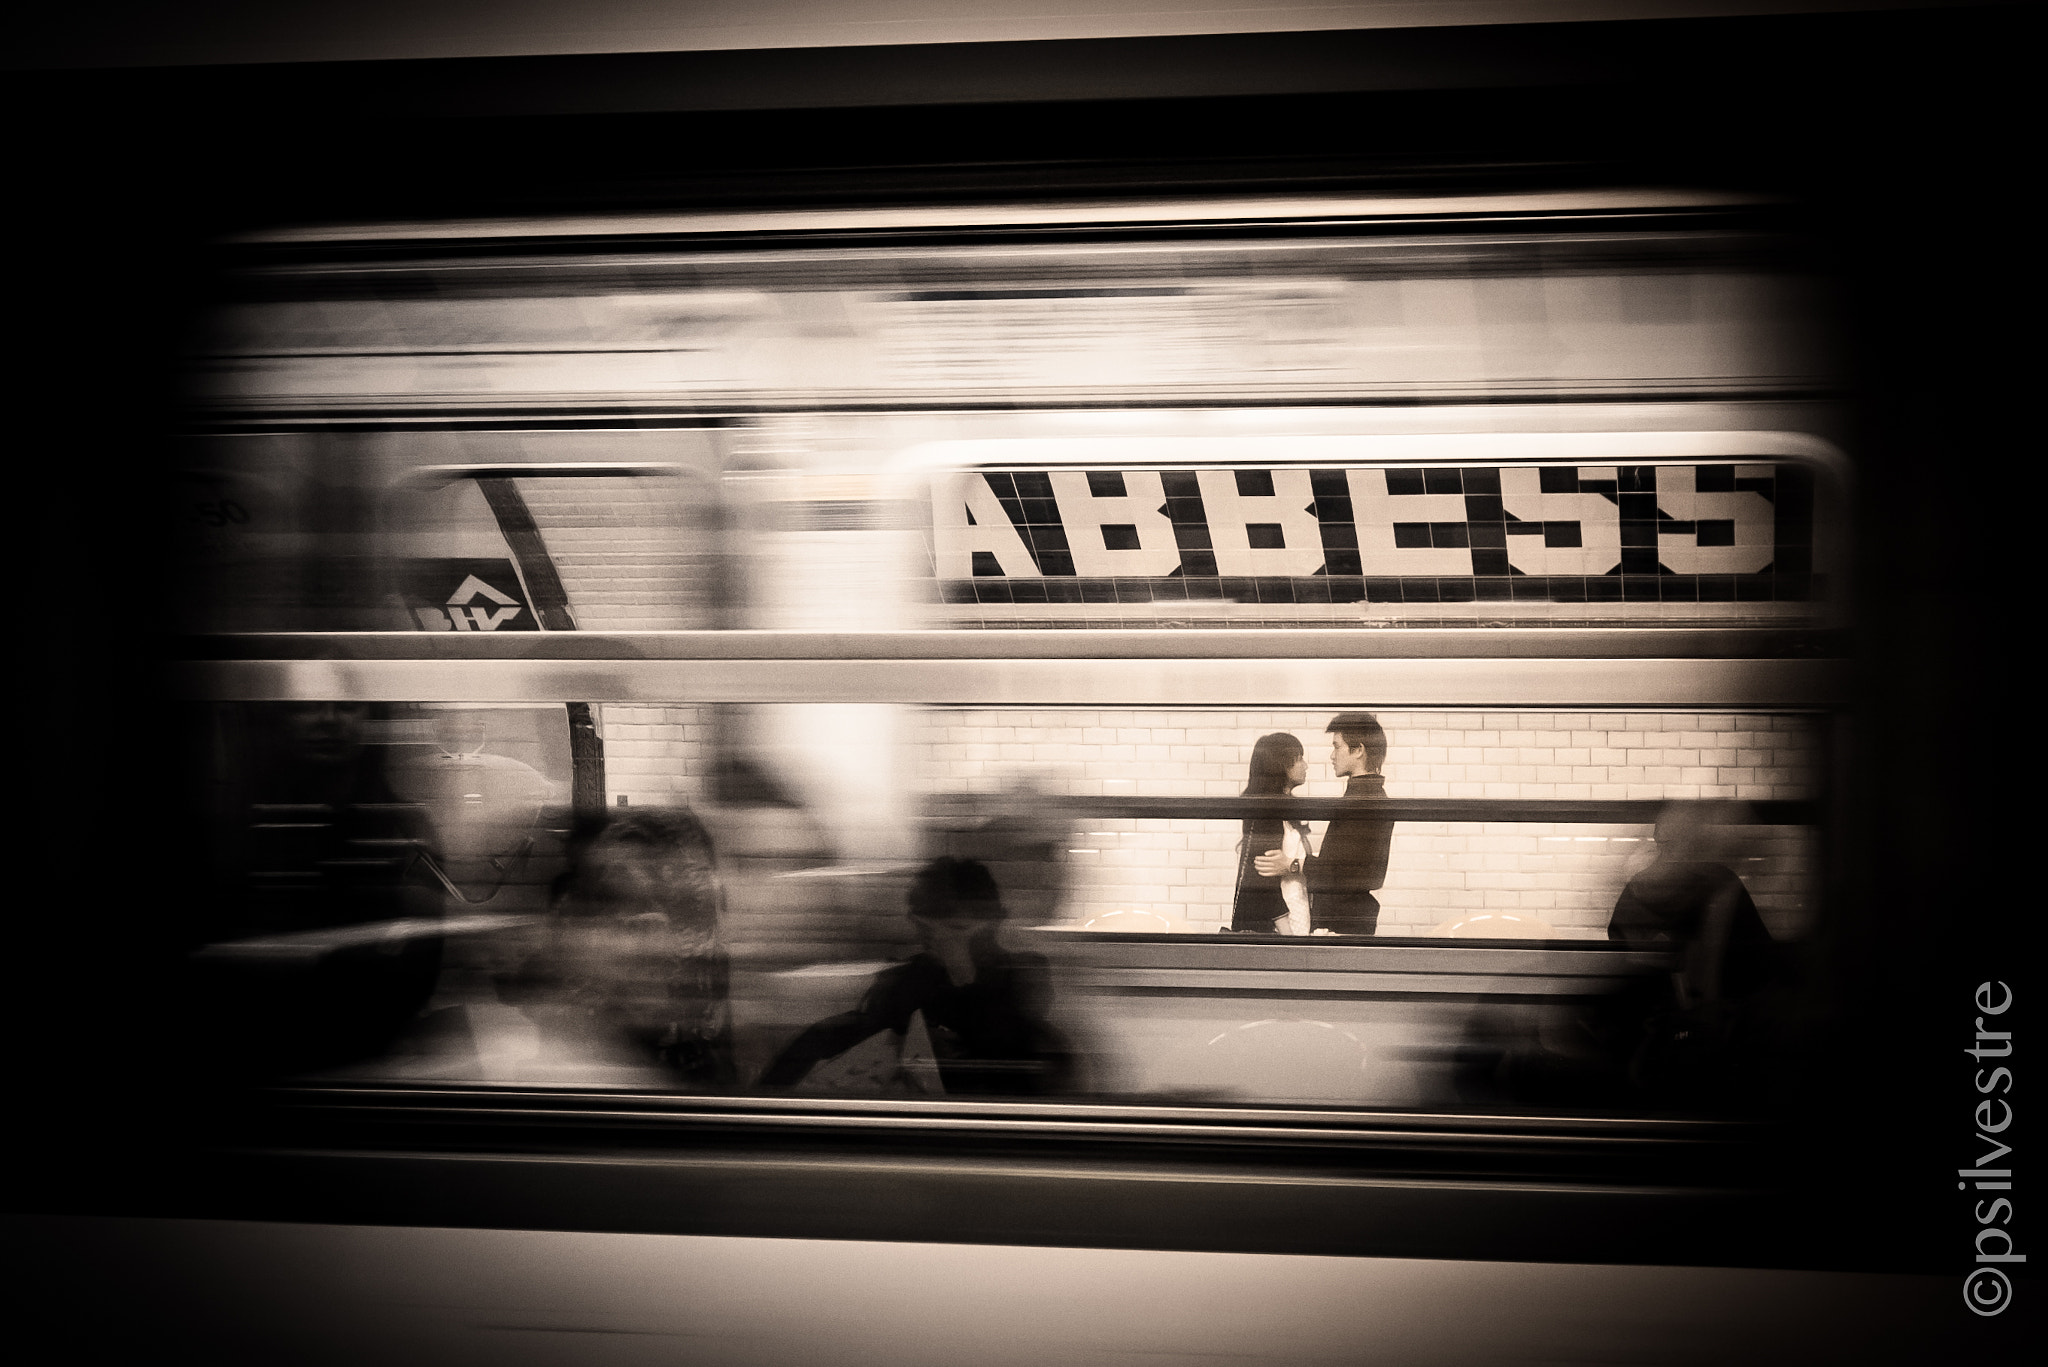 Photograph Escenas de amor y desamor en la estación de Abbesses by Pilar   Silvestre             *Moneypenny* on 500px